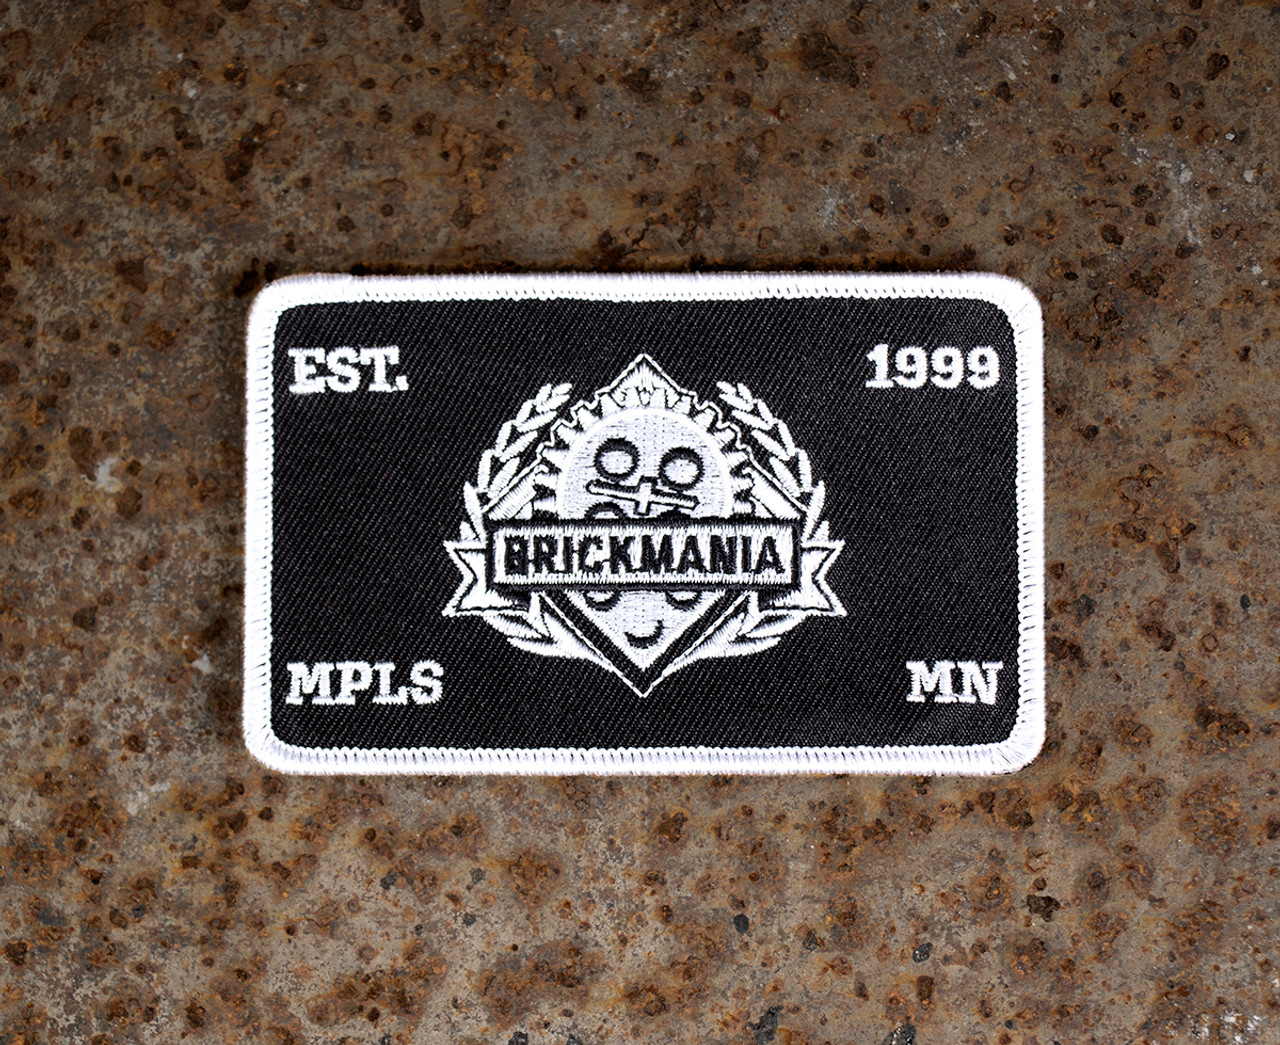 Brickmania Hook Fastener Tactical Patch - Black and White